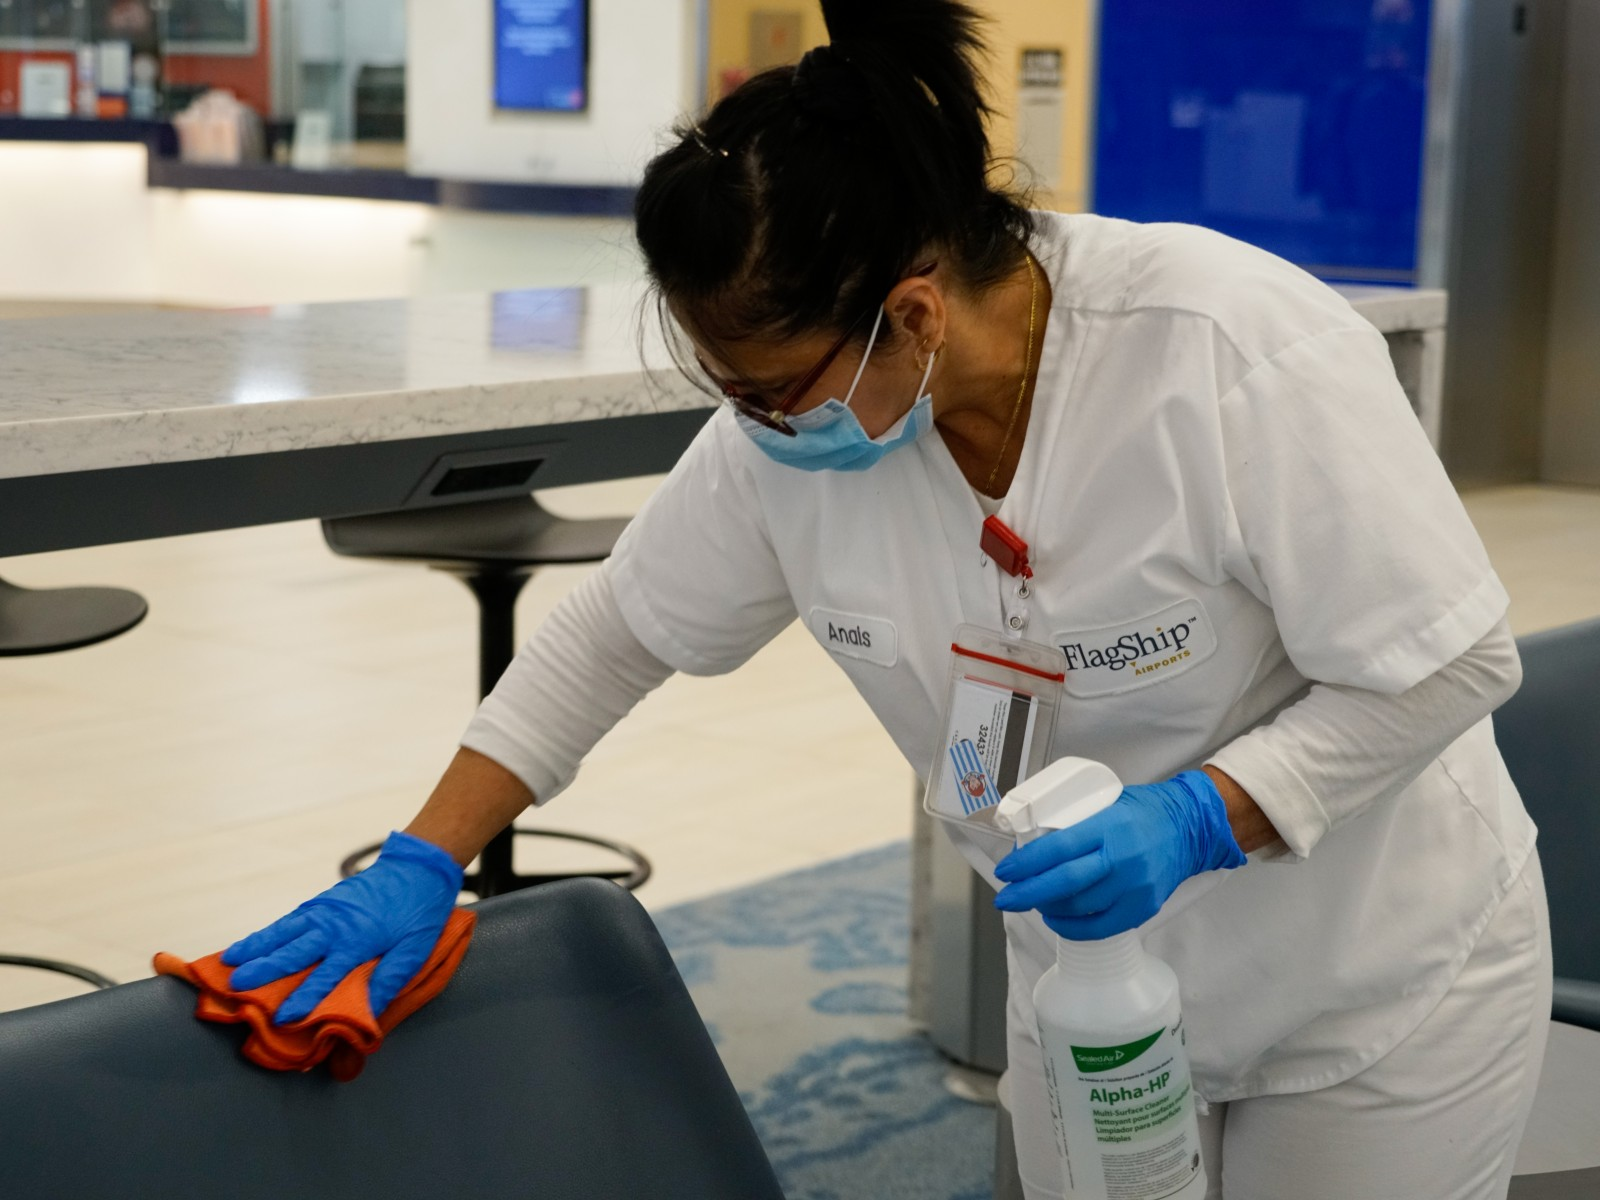 Tampa International Airport employee sanitizing high-touch area